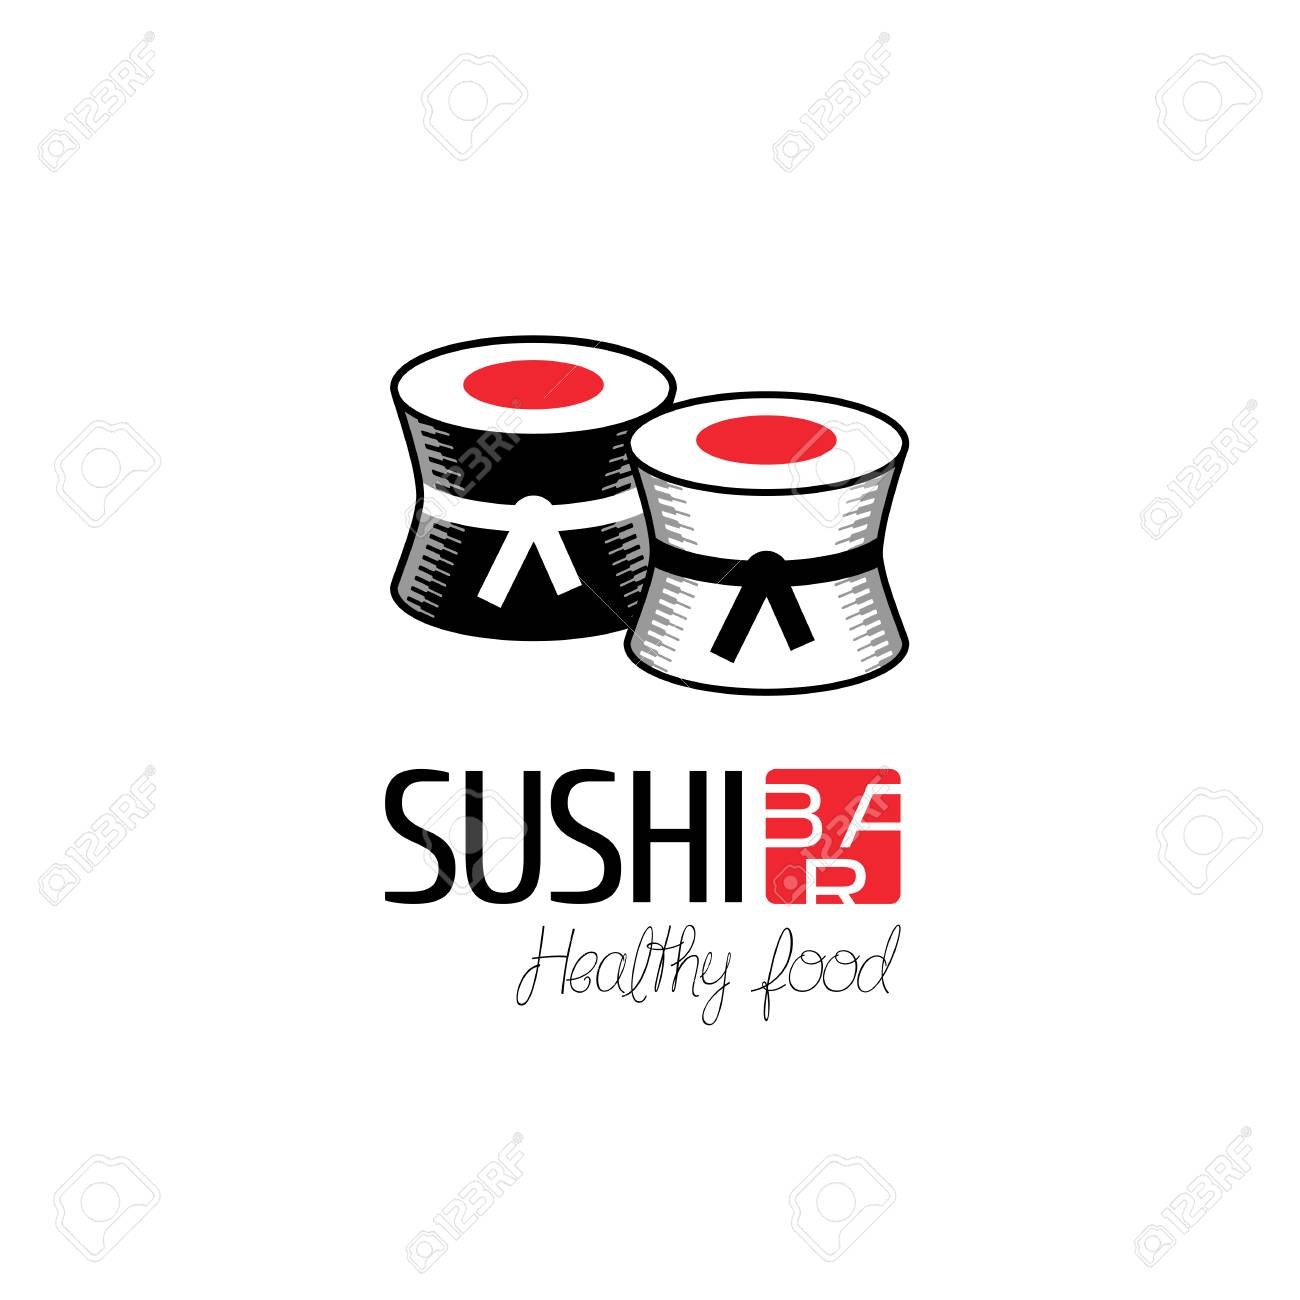 Vector Logo Design Element For Sushi Restaurant Japanese Cuisine Royalty Free Cliparts Vectors And Stock Illustration Image 54644887